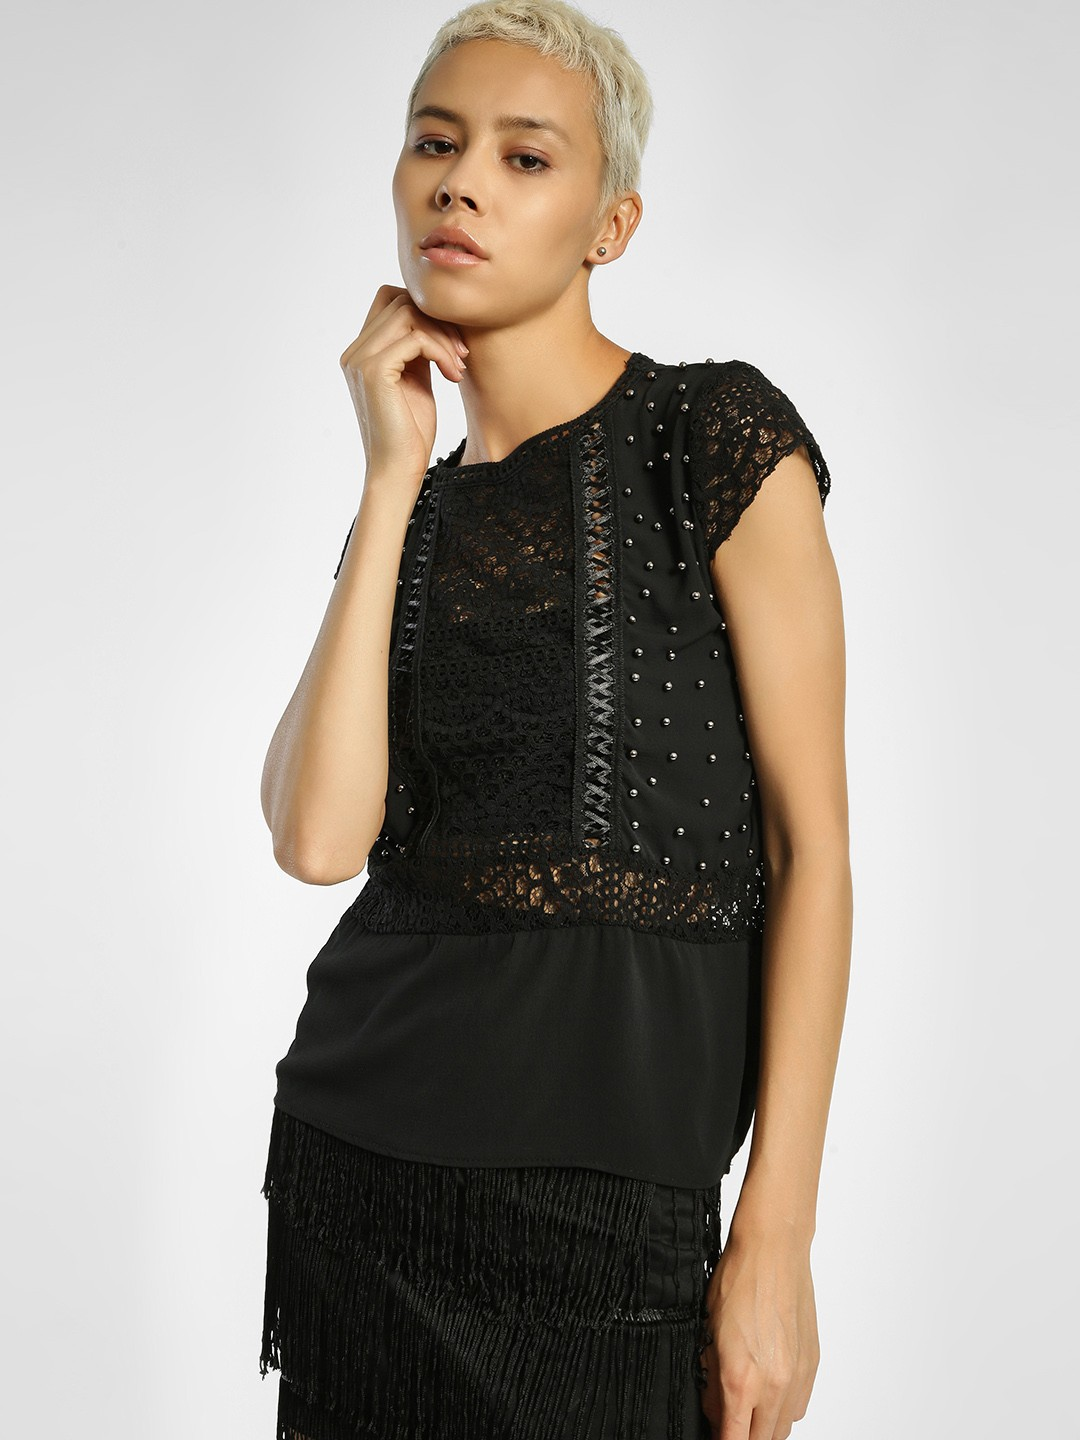 Privy League Black Lace Yoke Detail Embellished Top 1